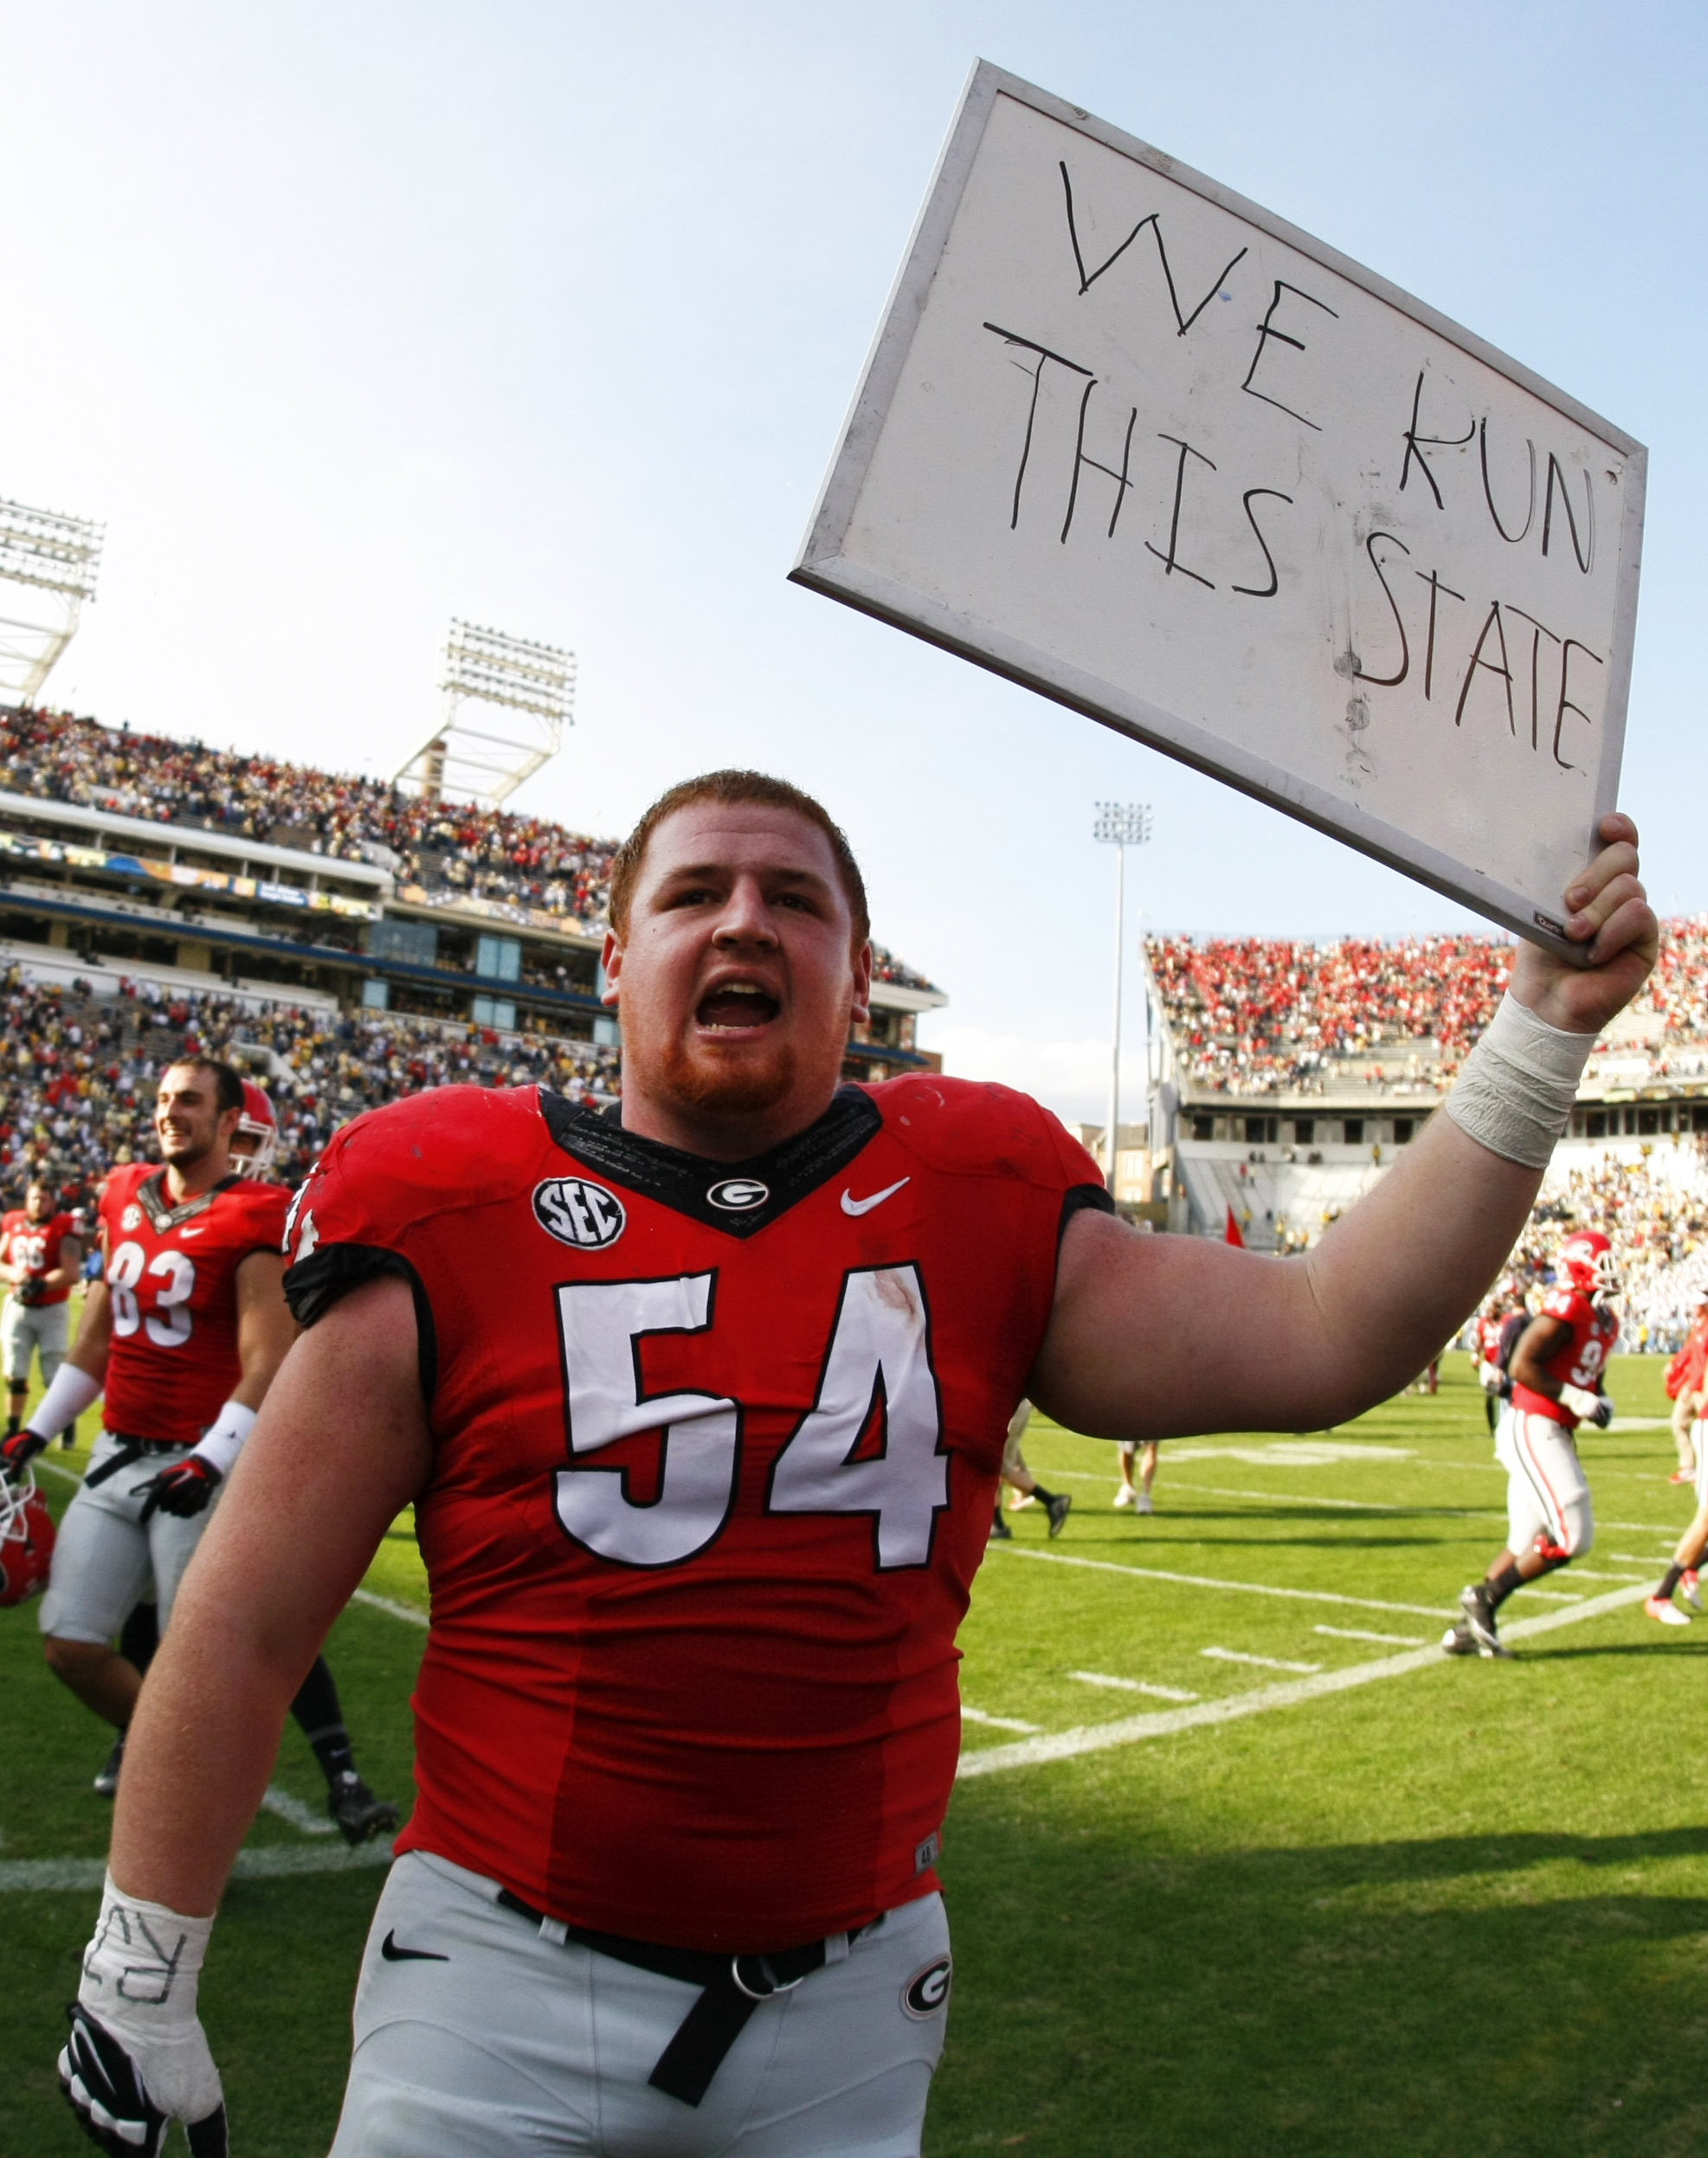 Georgia center Brandon Kublanow (54) celebrates after they defeated Georgia Tech 13-7 in an NCAA college football game Saturday, Nov. 28, 2015, in Atlanta, Ga. (AP Photo/Brett Davis)